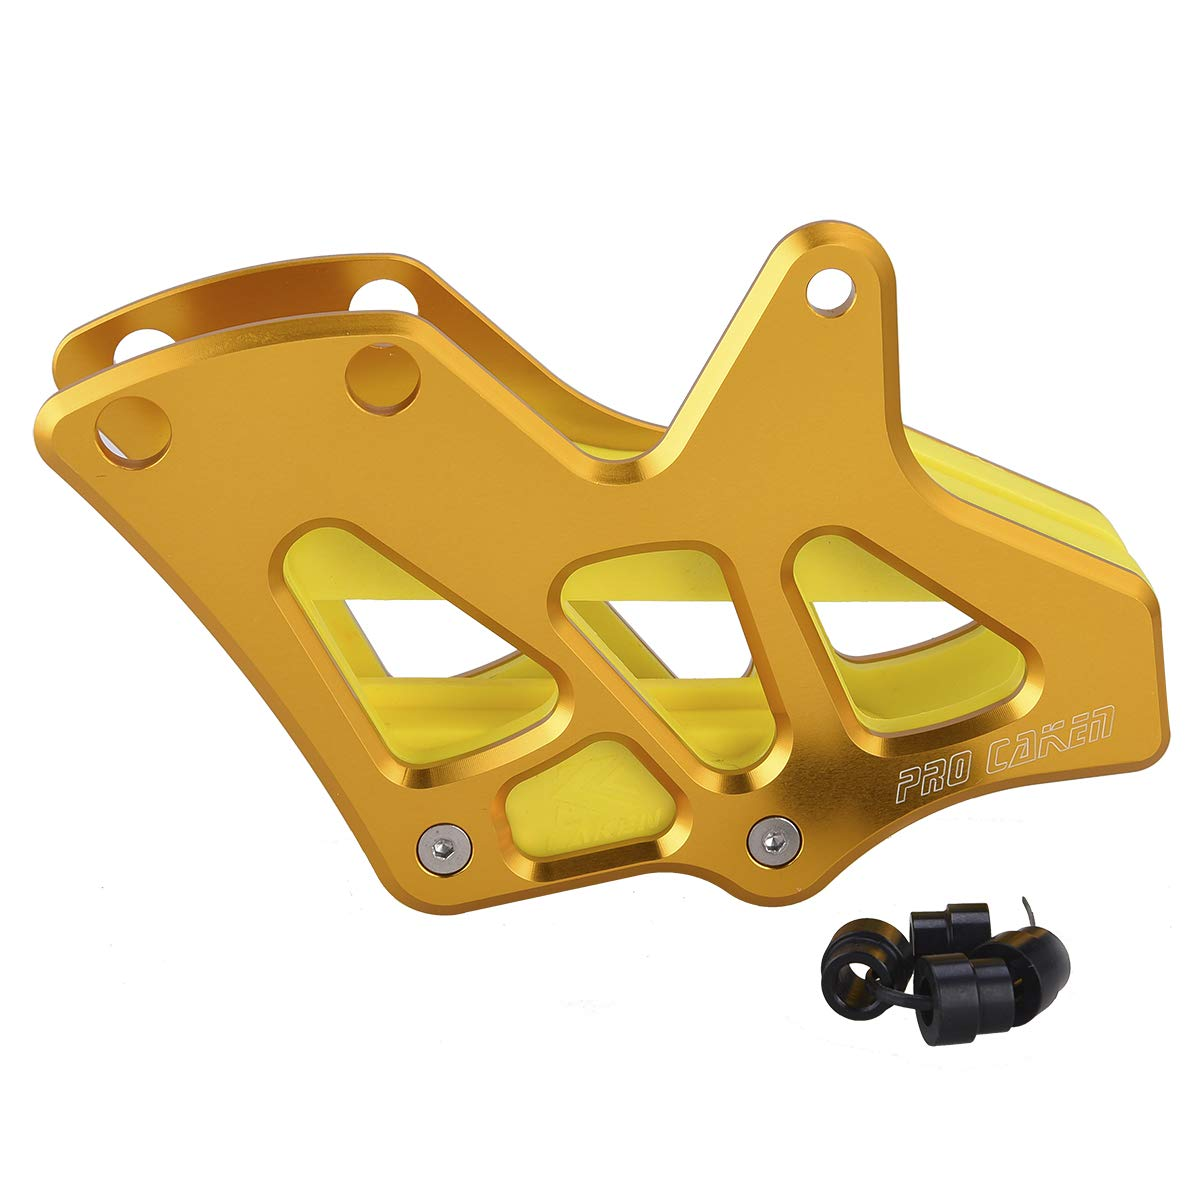 PRO CAKEN CNC Billet Chain Guide Slider Guard for RM250 RMZ450 DRZ400 YZ250 WR450F by PRO CAKEN